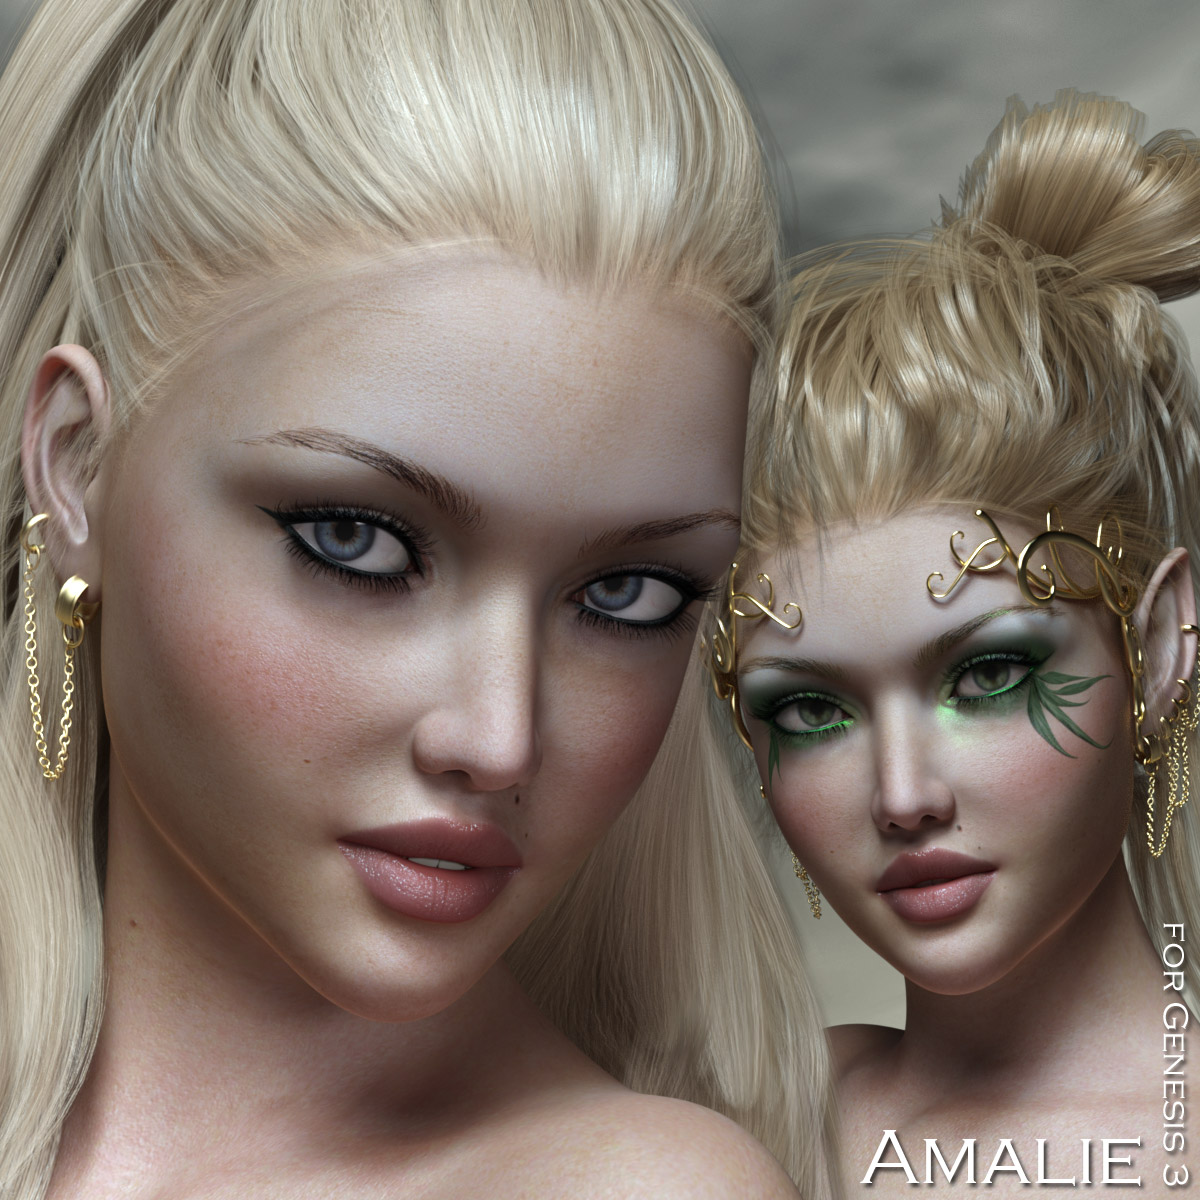 Amalie for Genesis 3